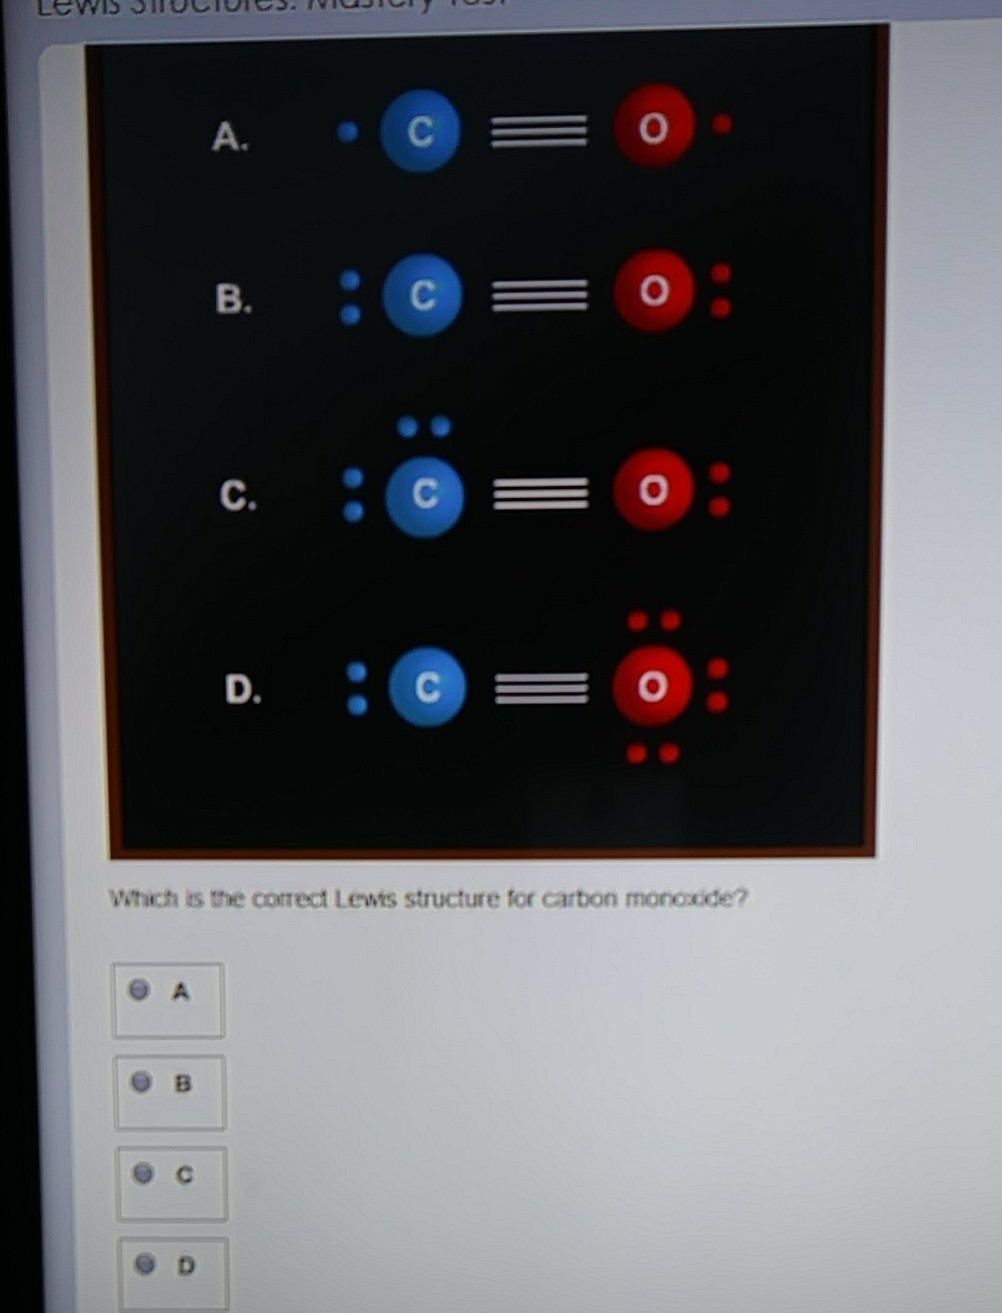 What Is The Correct Lewis Structure For Carbon Monoxide